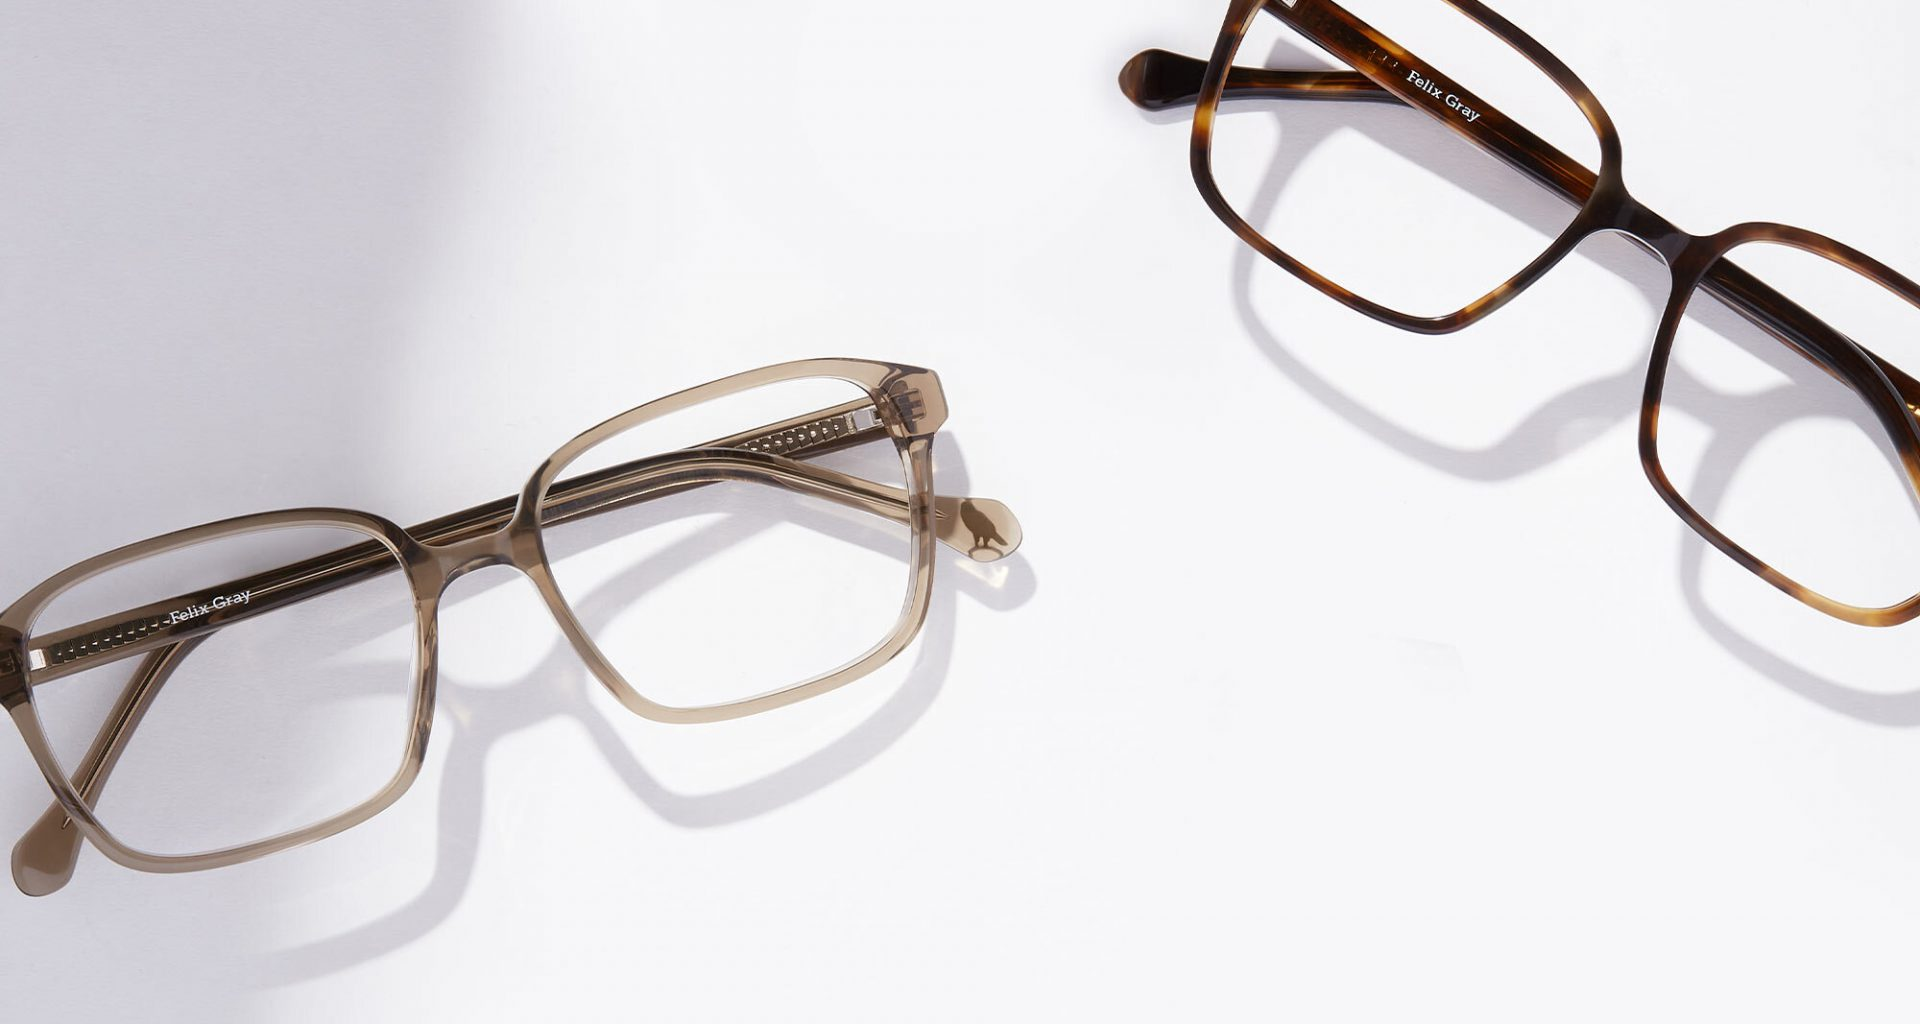 A pair of square soft champagne colored eyeglasses next to a pair of brown square eyeglasses